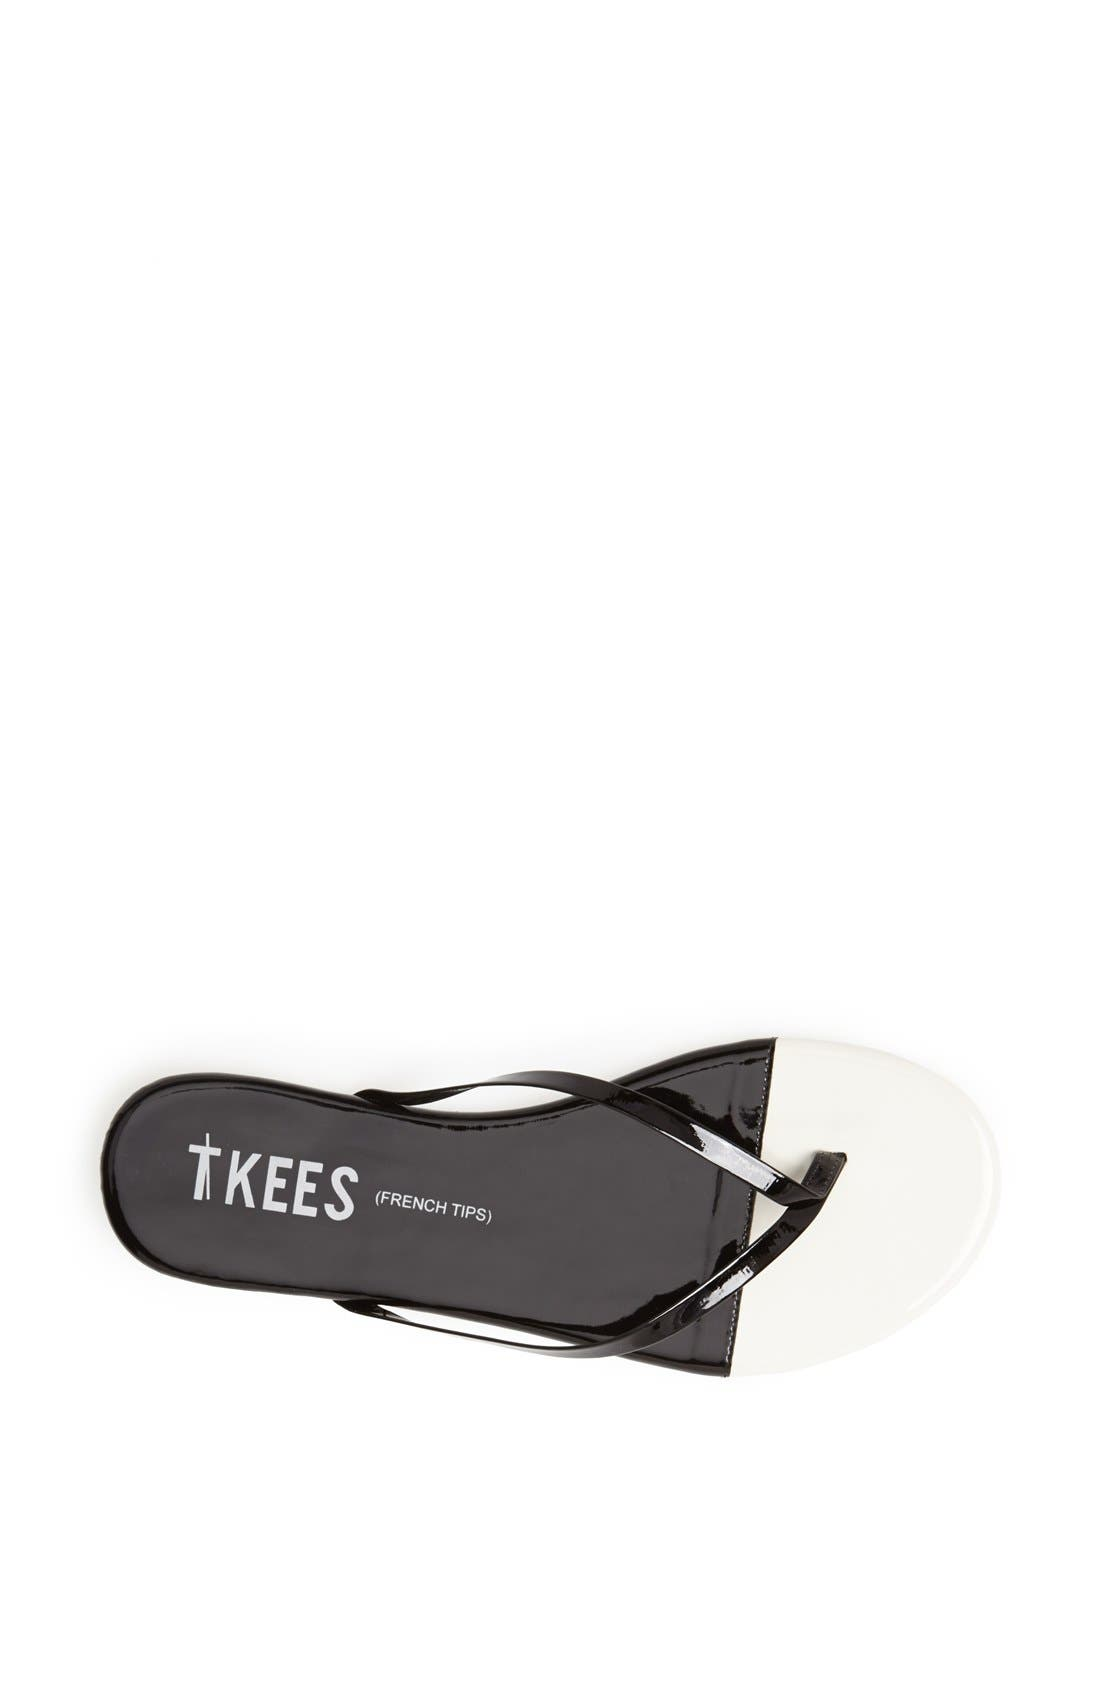 Alternate Image 3  - TKEES 'French Tips' Flip Flop